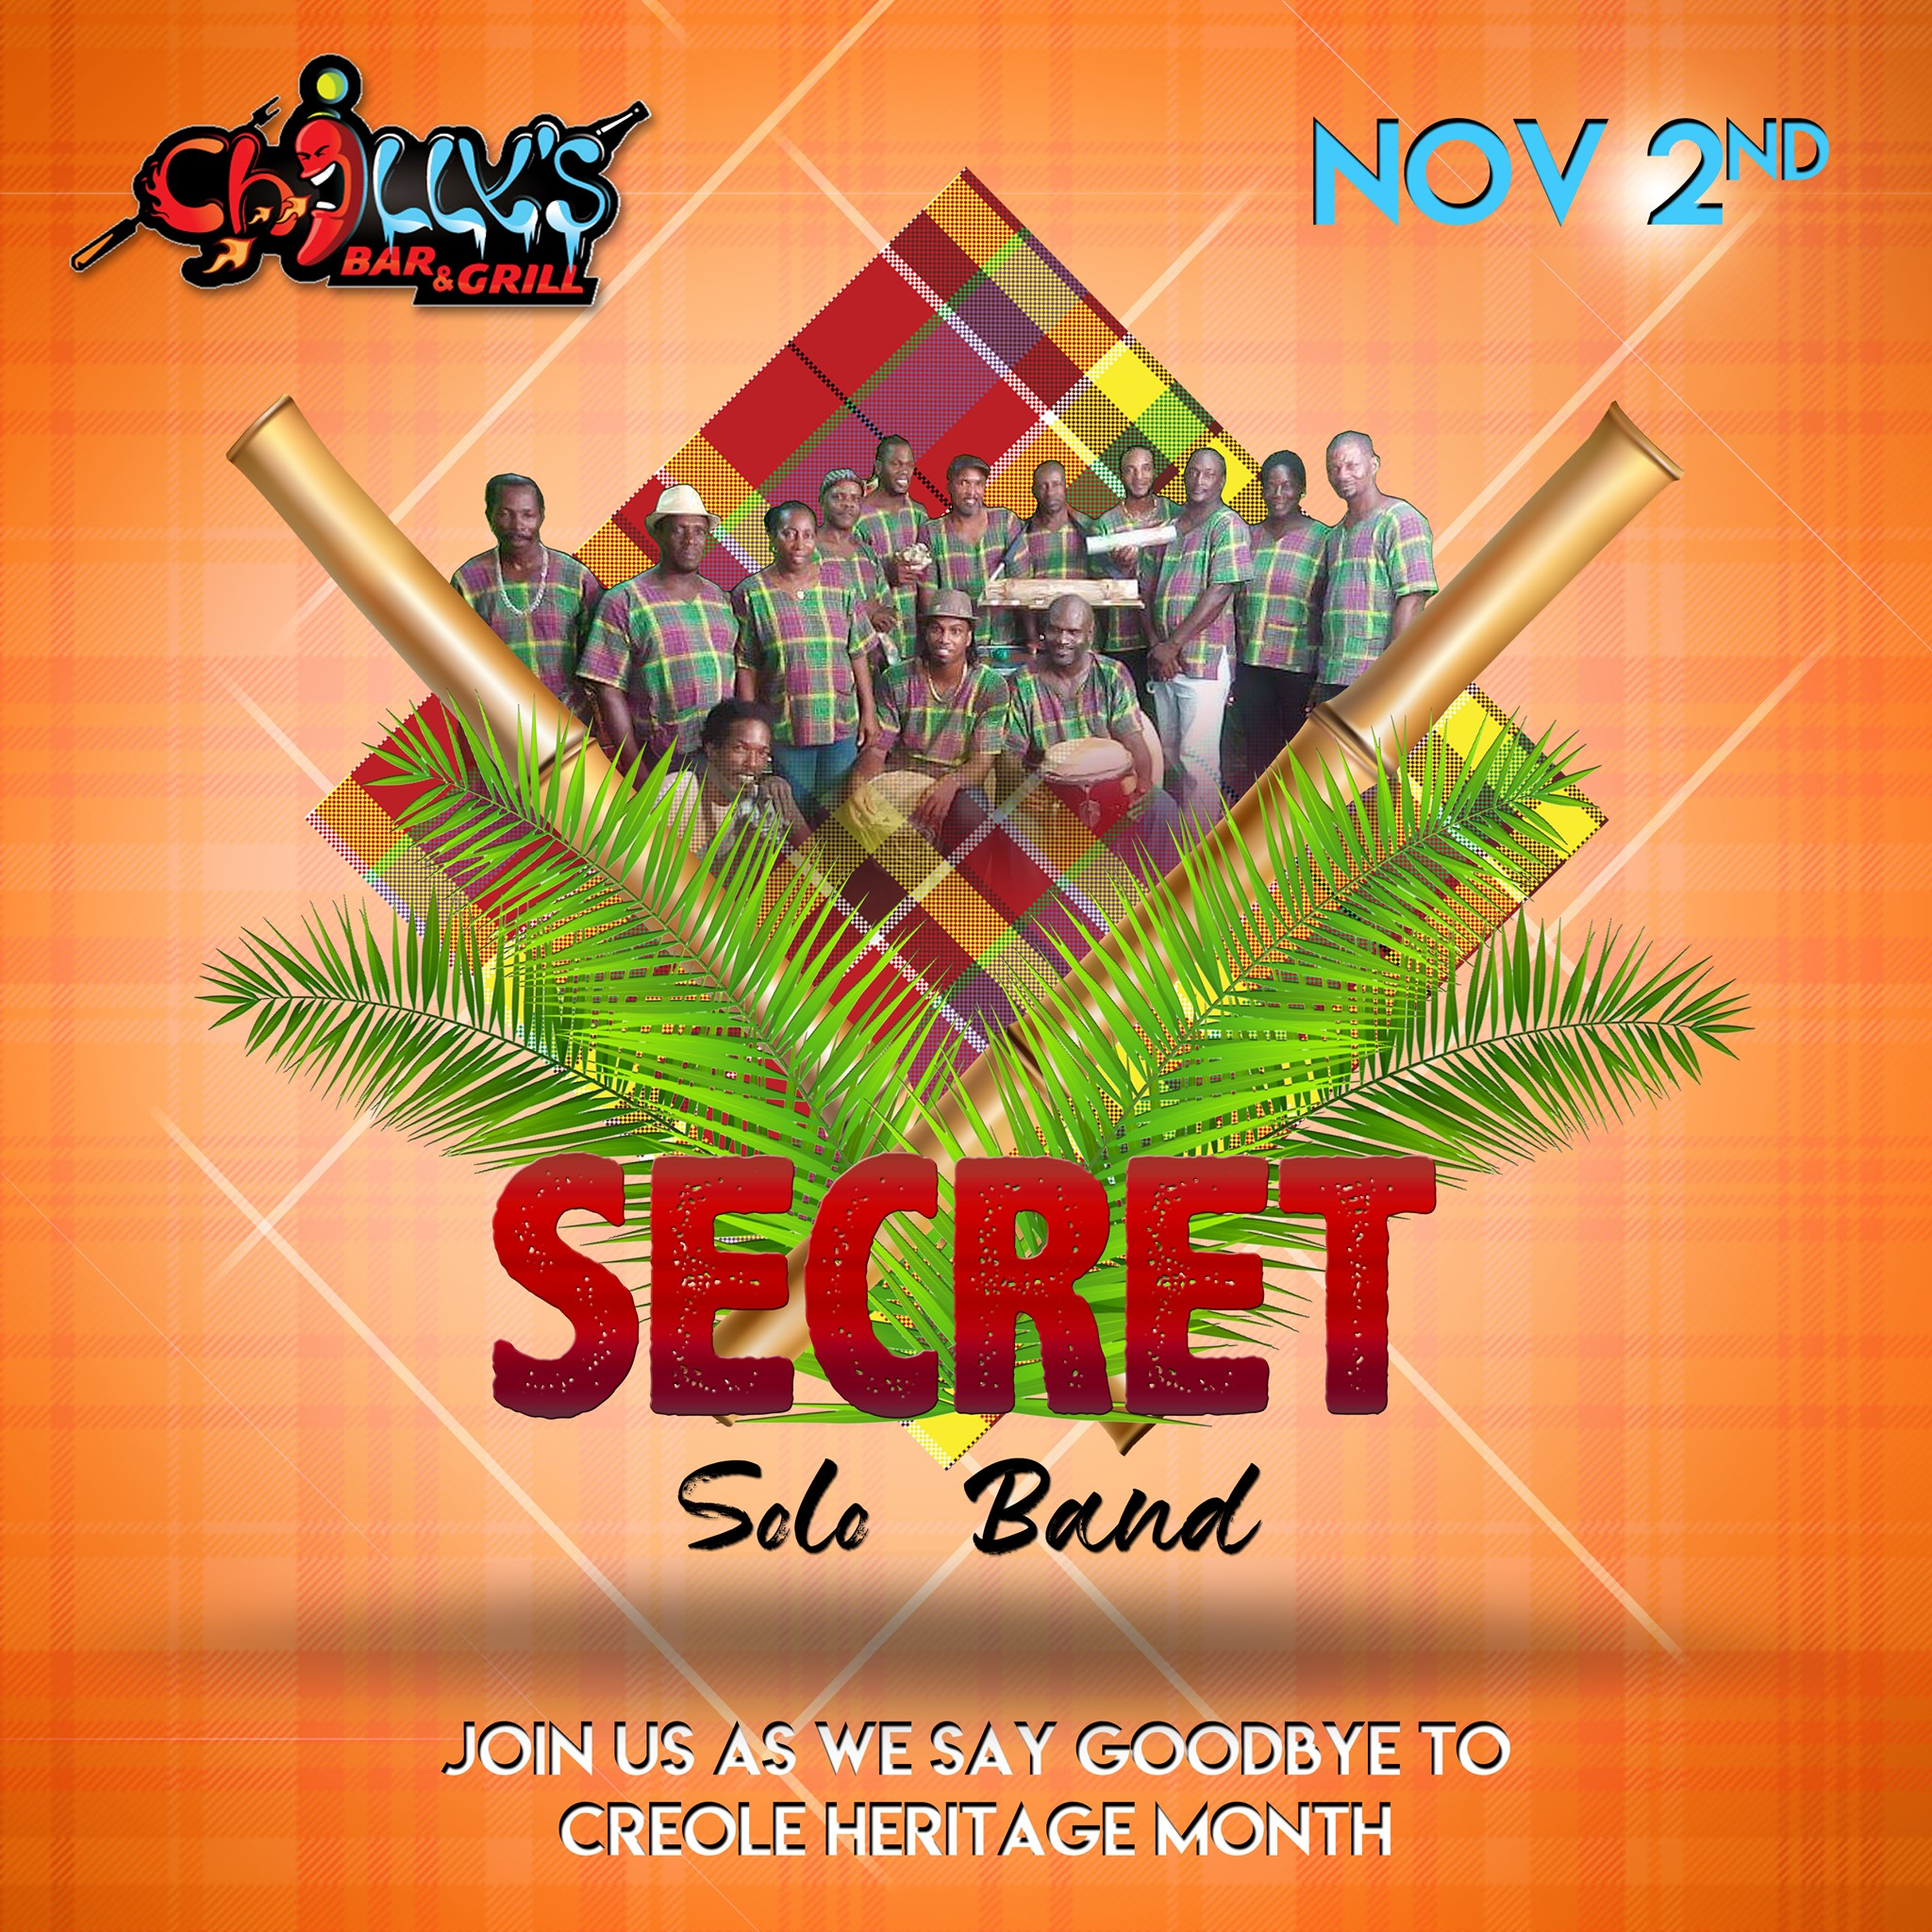 say goodby to creole heritage month in Jacmel at Chilly's Bar & Grill Secret Solo Band and Friends